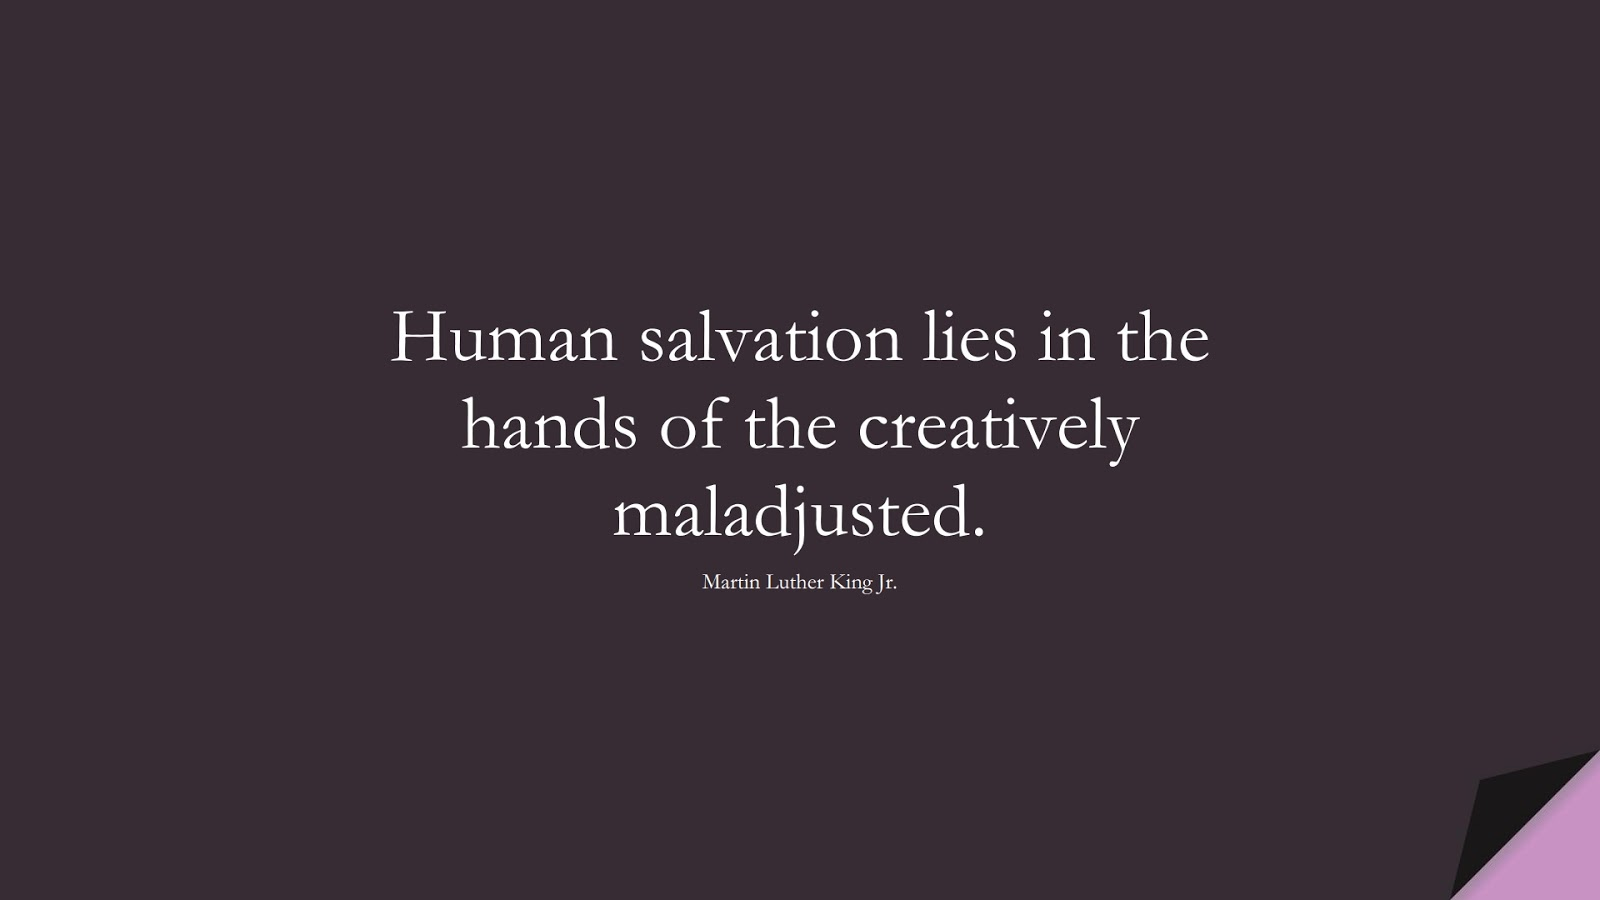 Human salvation lies in the hands of the creatively maladjusted. (Martin Luther King Jr.);  #MartinLutherKingJrQuotes